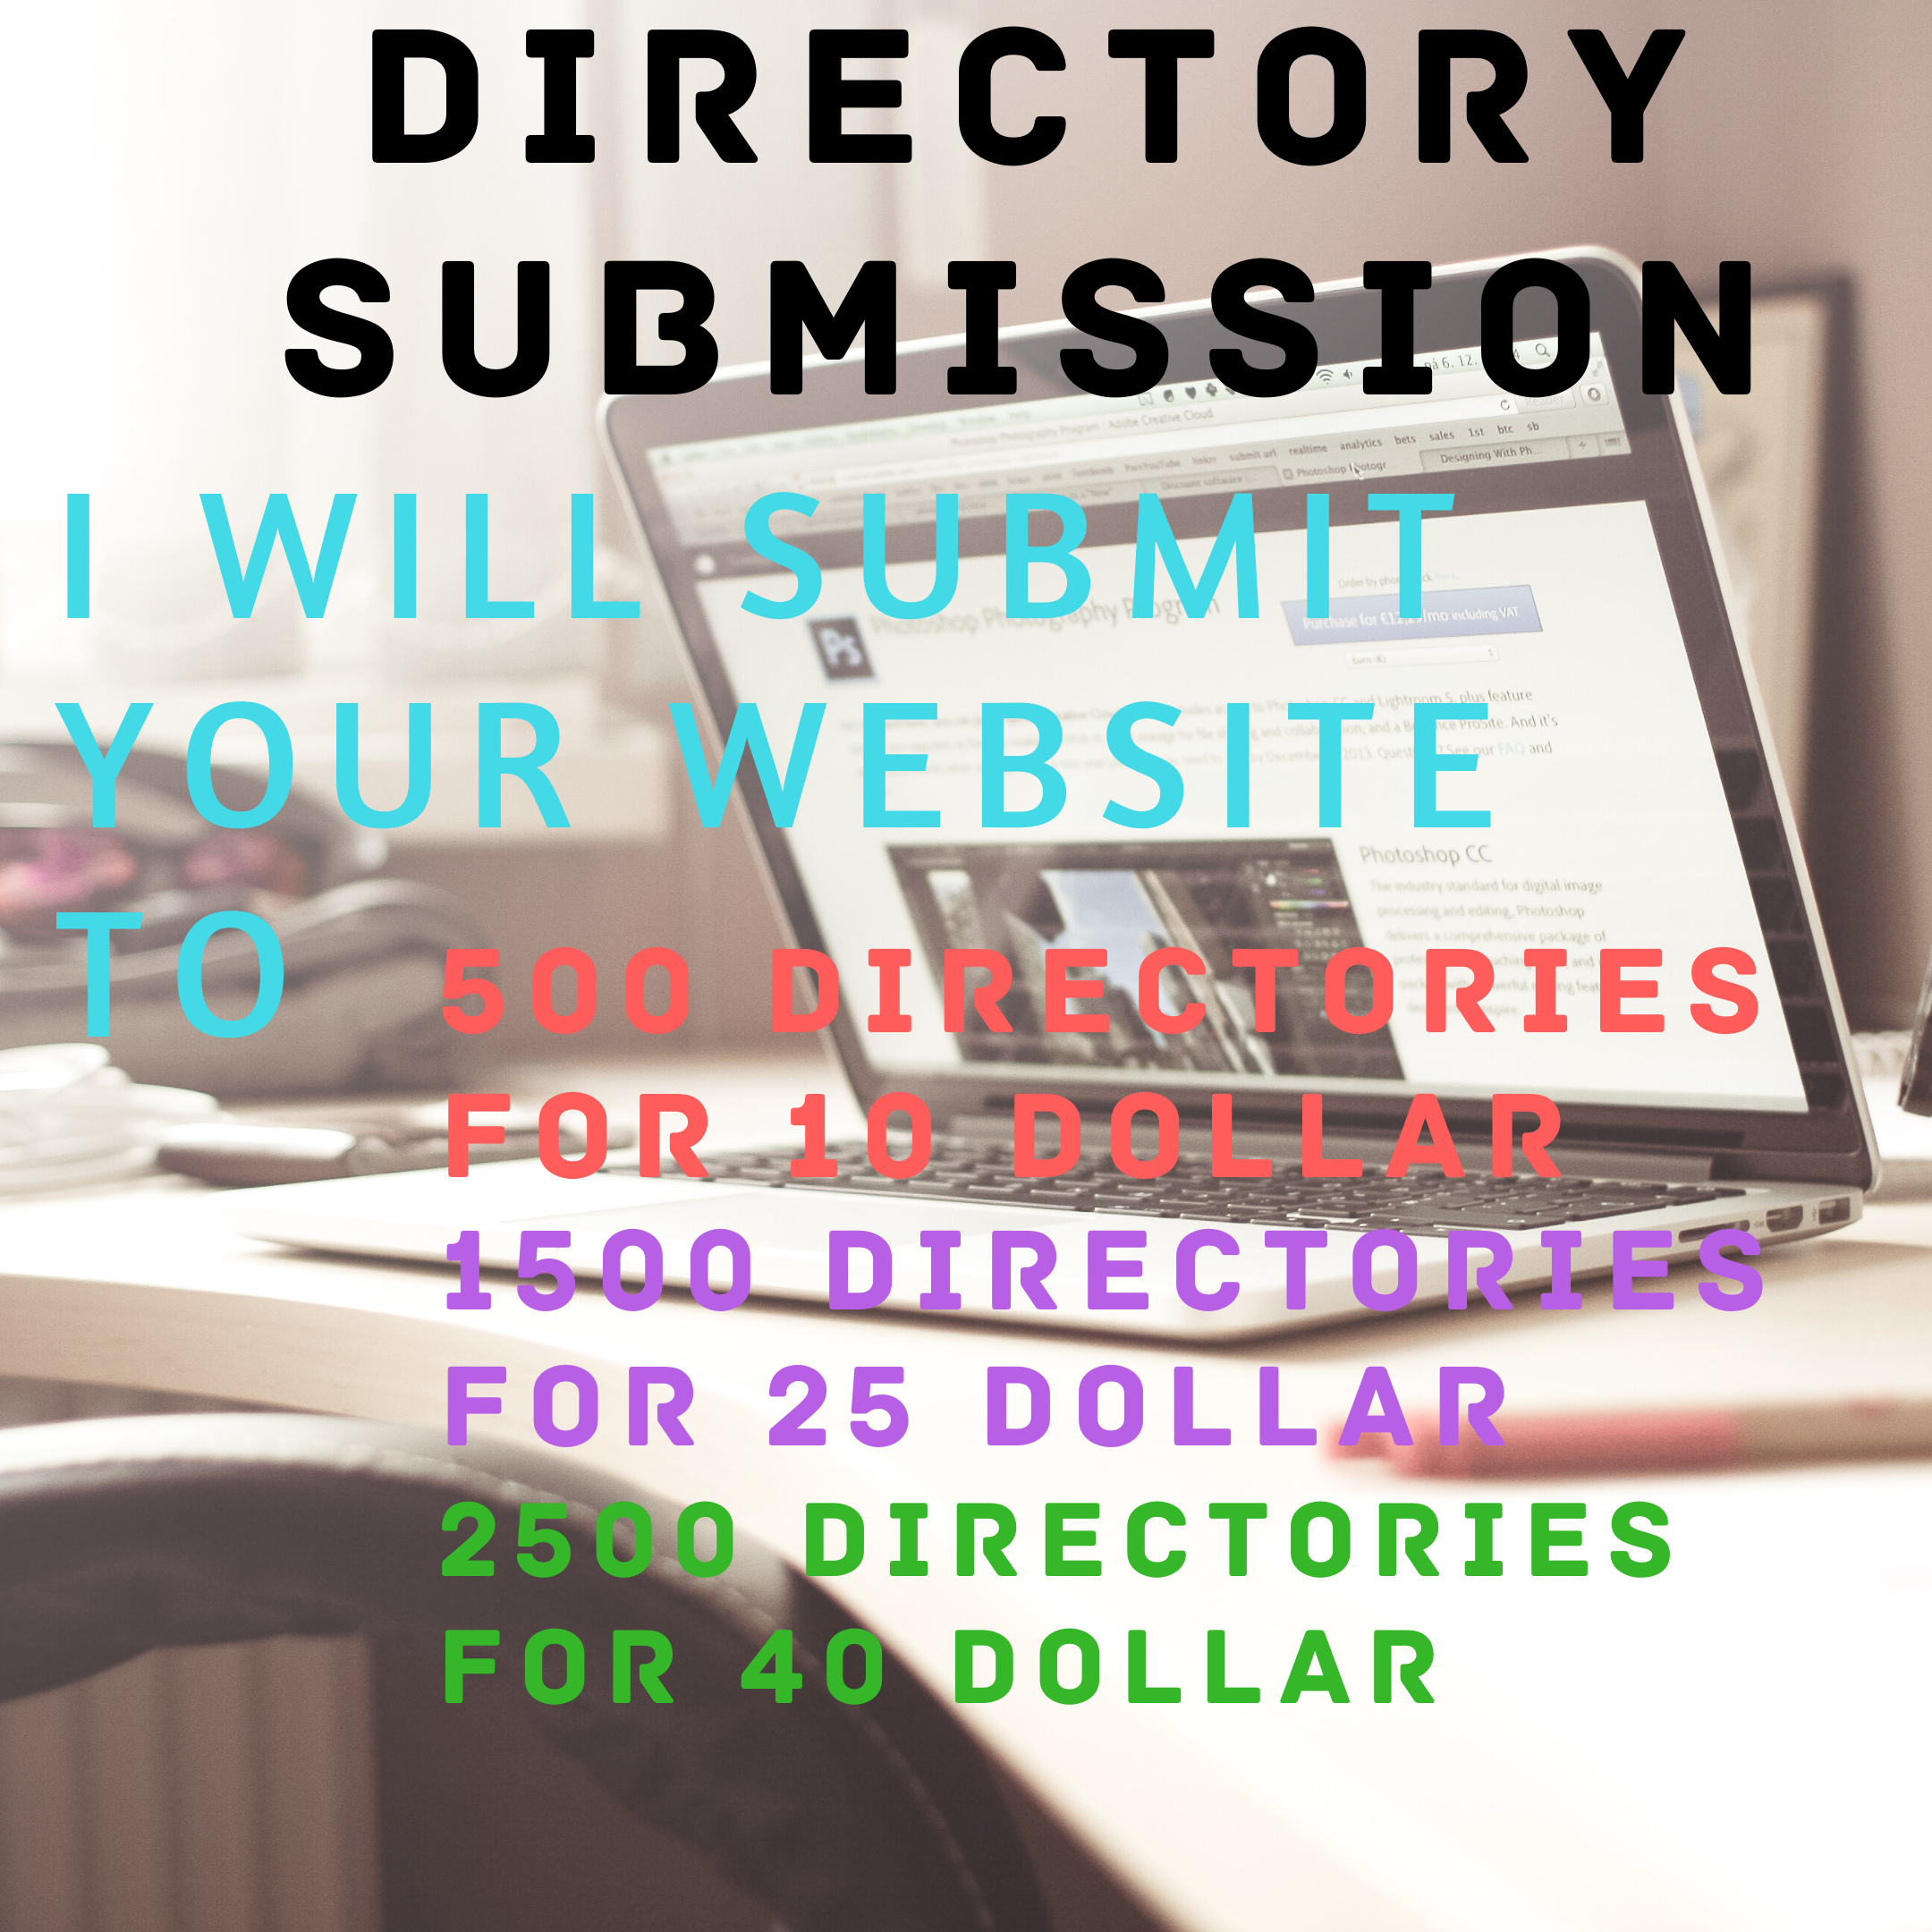 I will submit your website address to 500 directory submissions in 10 dollar